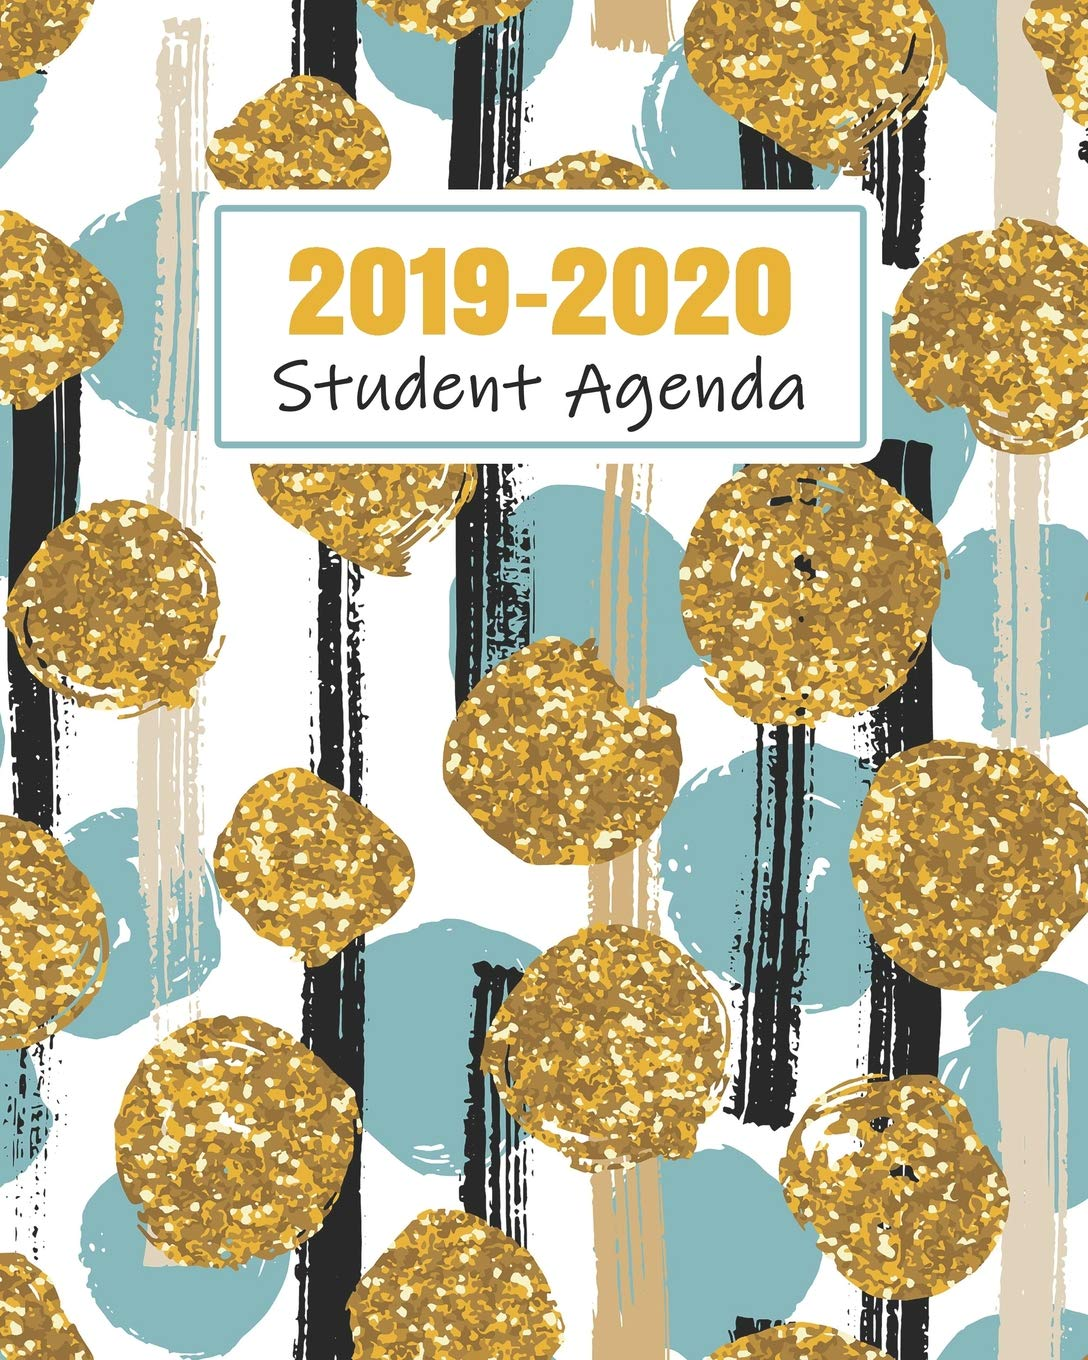 Amazon.com: 2019-2020 Student Agenda: Daily, Weekly, and ...